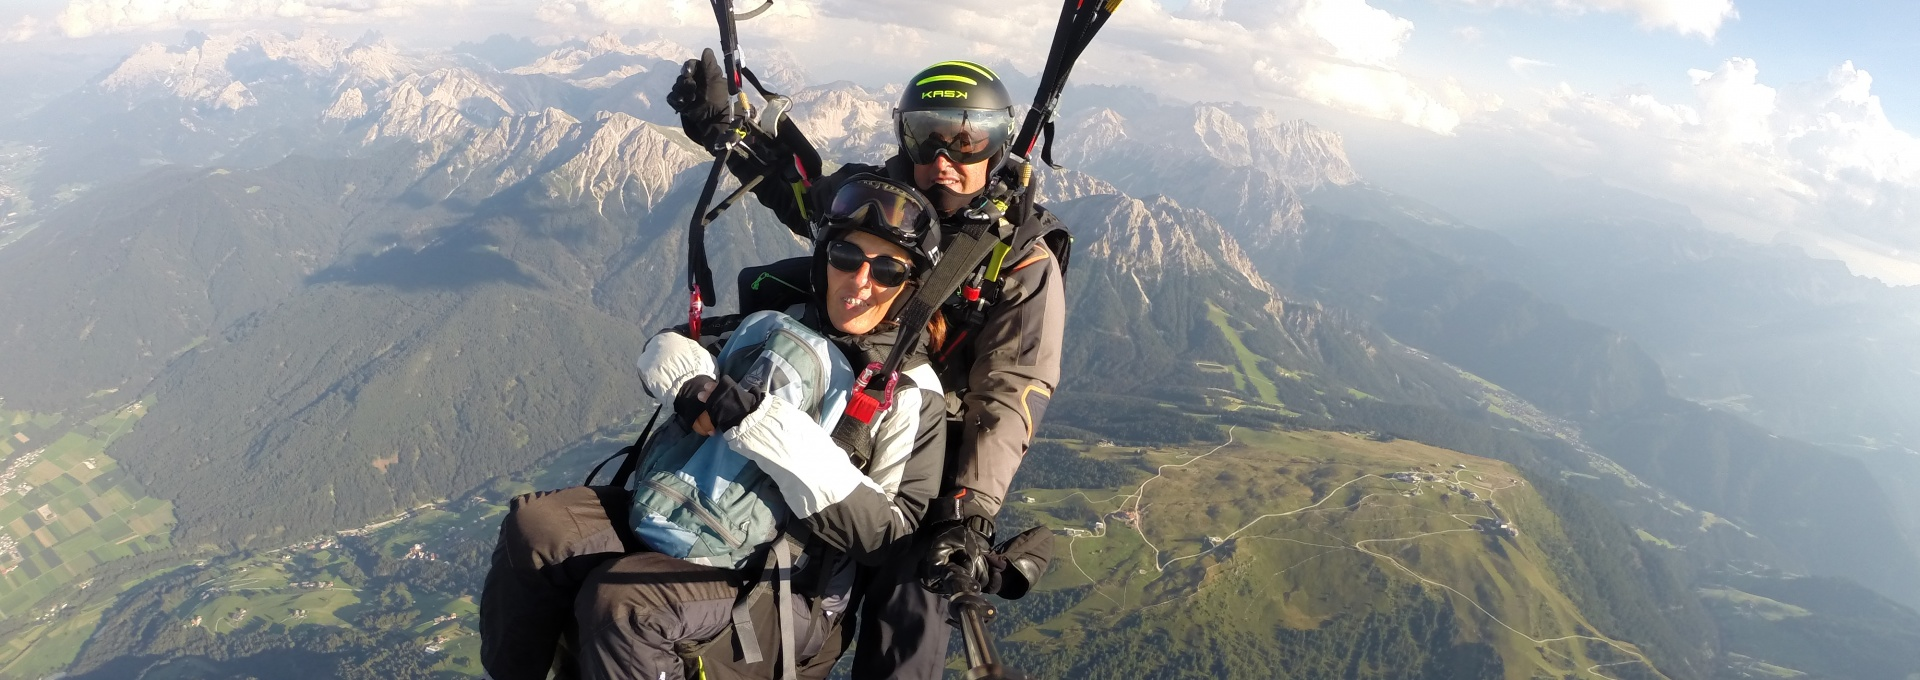 Paragliding Val Pusteria